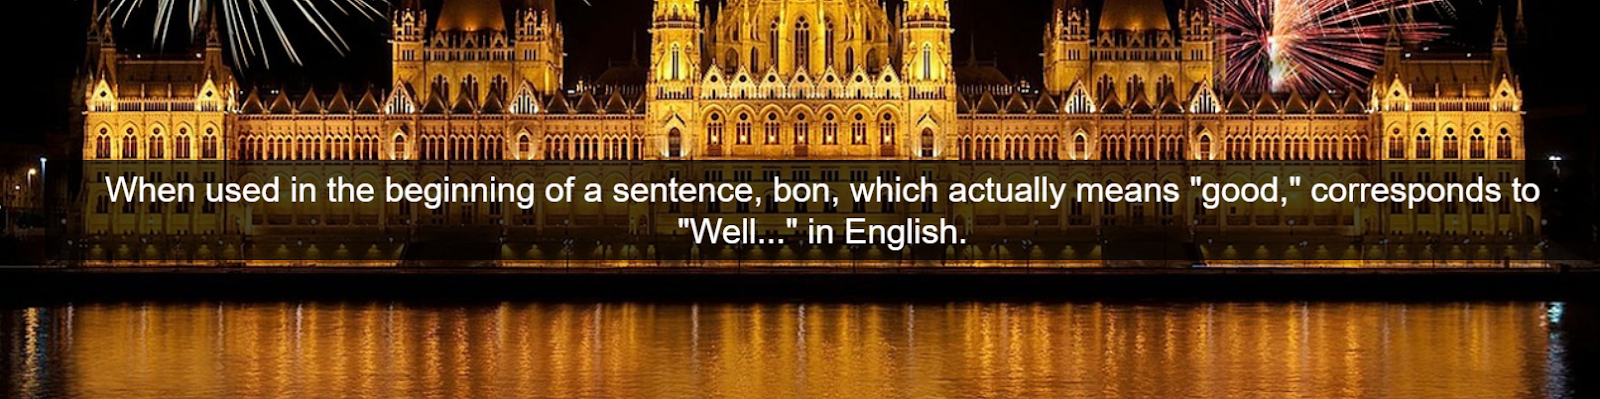 When used in the beginning of a sentence, bon, which actually means good, corresponds to Well... in English.